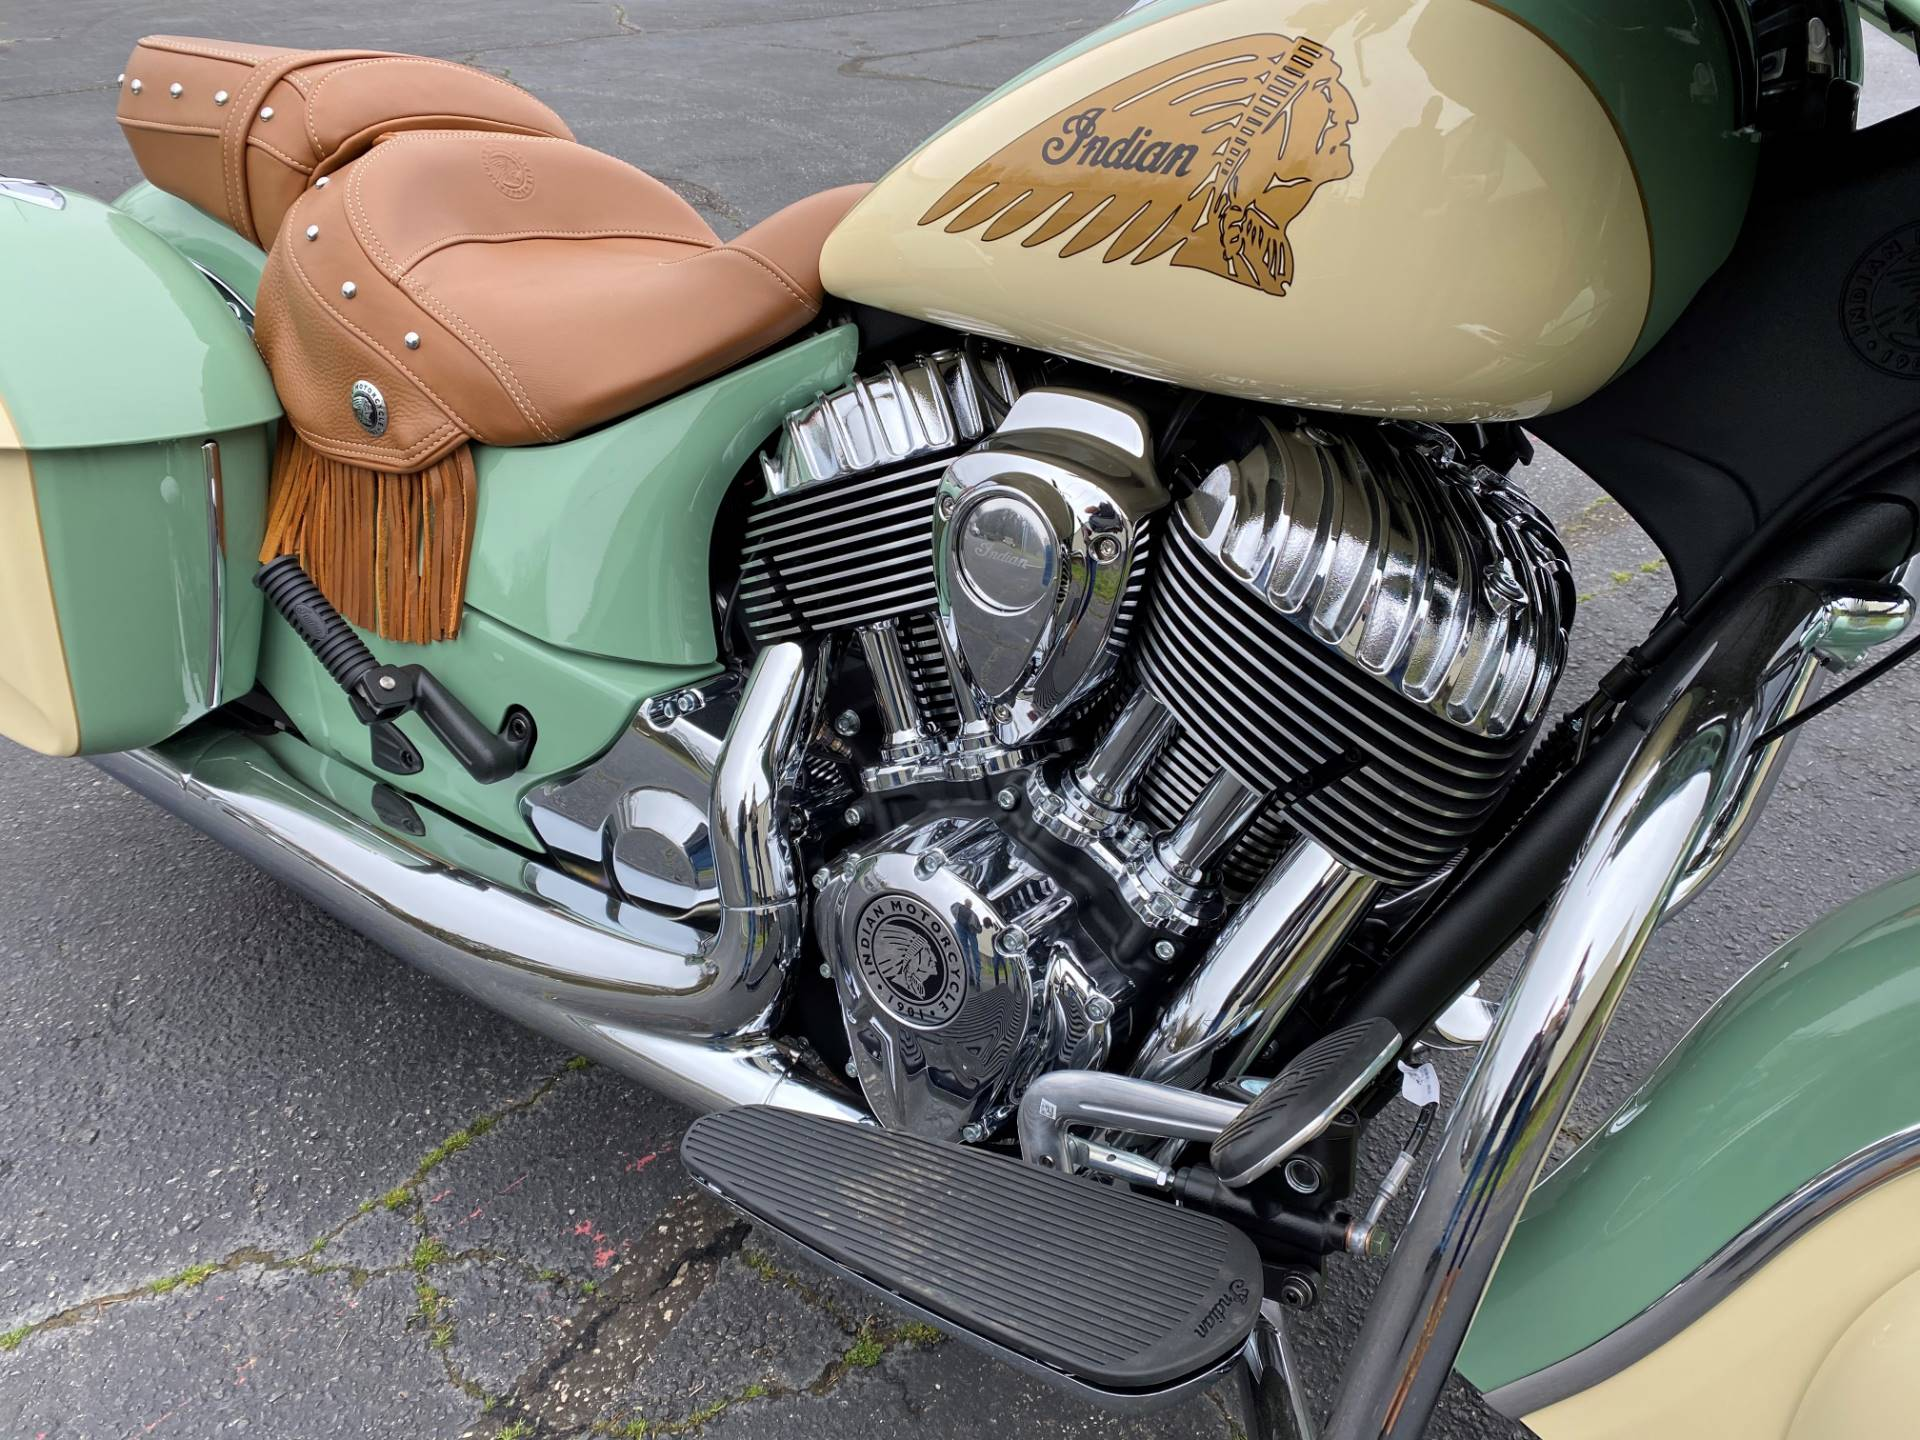 2020 Indian Chieftain Classic Icon Series - Photo 18